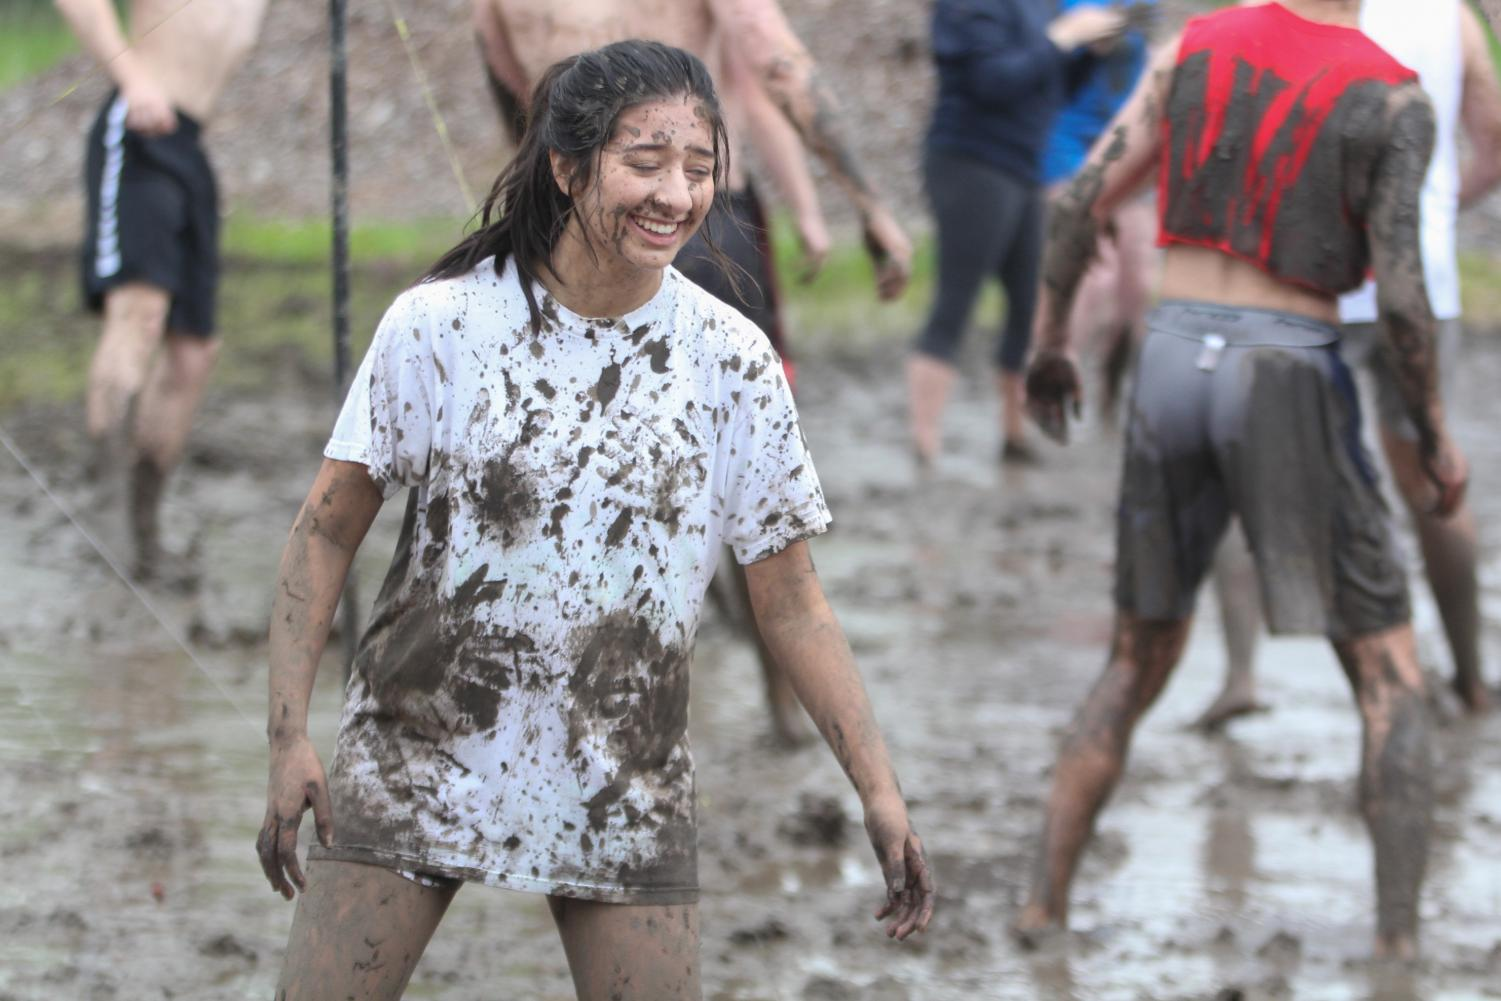 Covered+in+mud%2C+freshman+Aneesa+Ismail+laughs+at+herself.